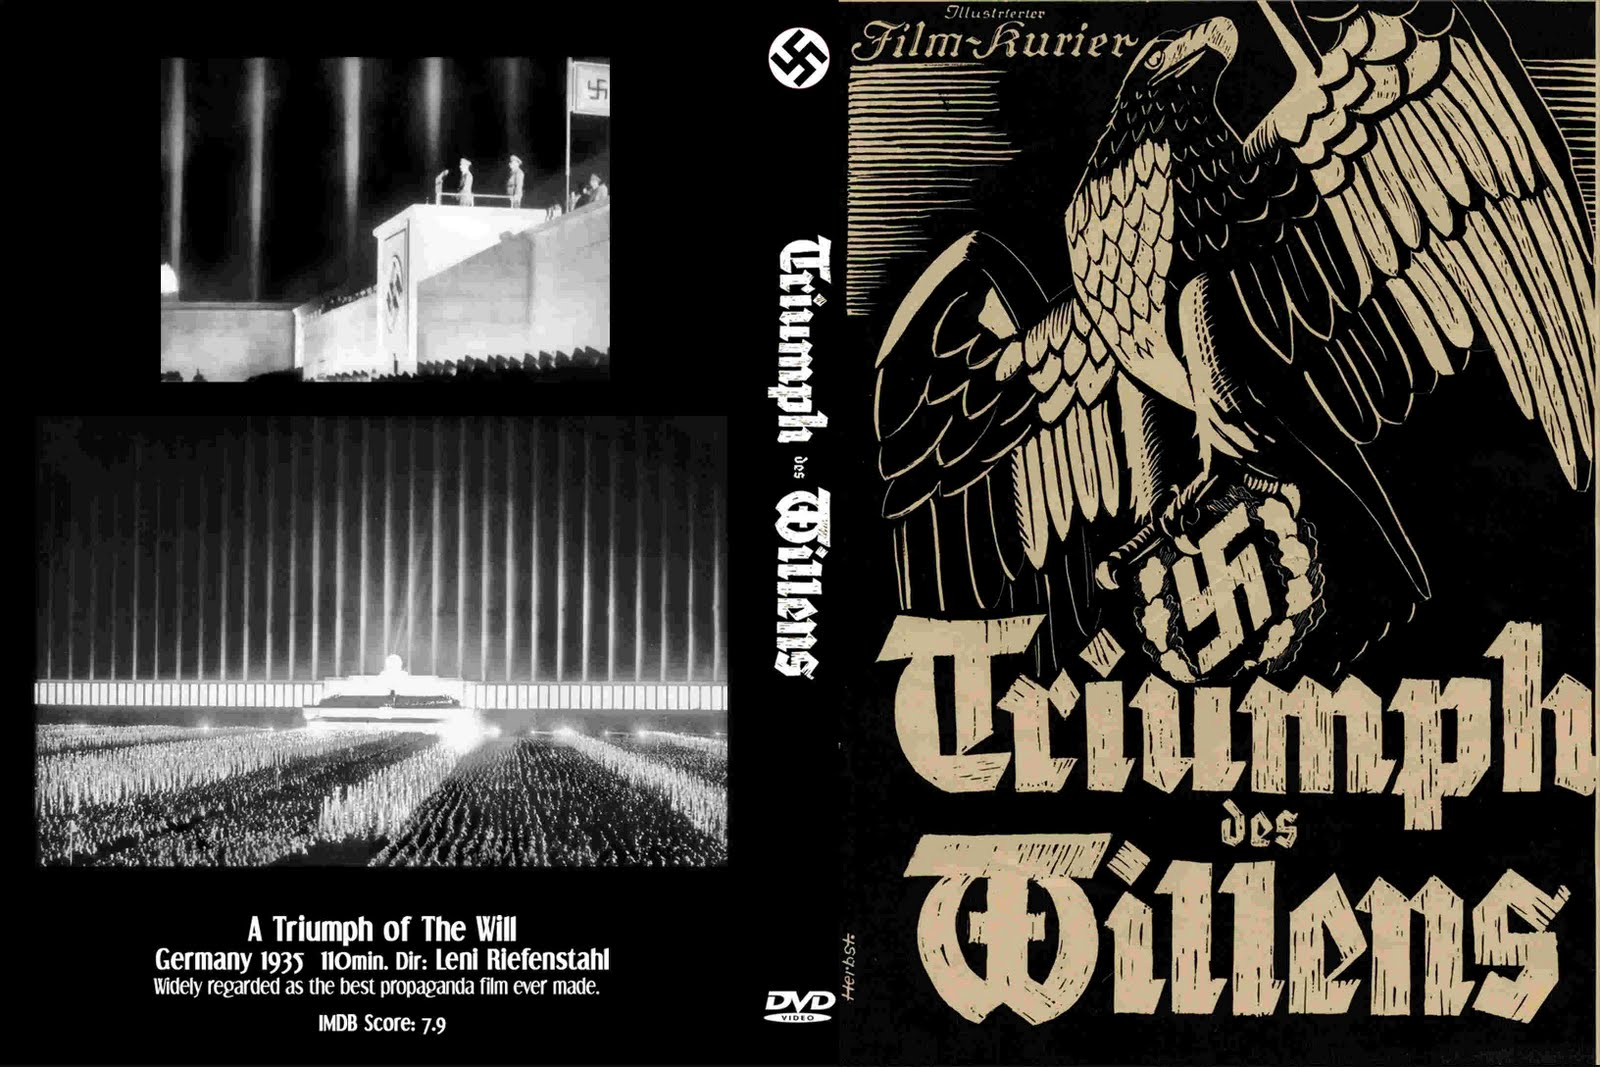 Triumph des Willens (Triumph of the Will), Dokumenter Masterpiece Leni